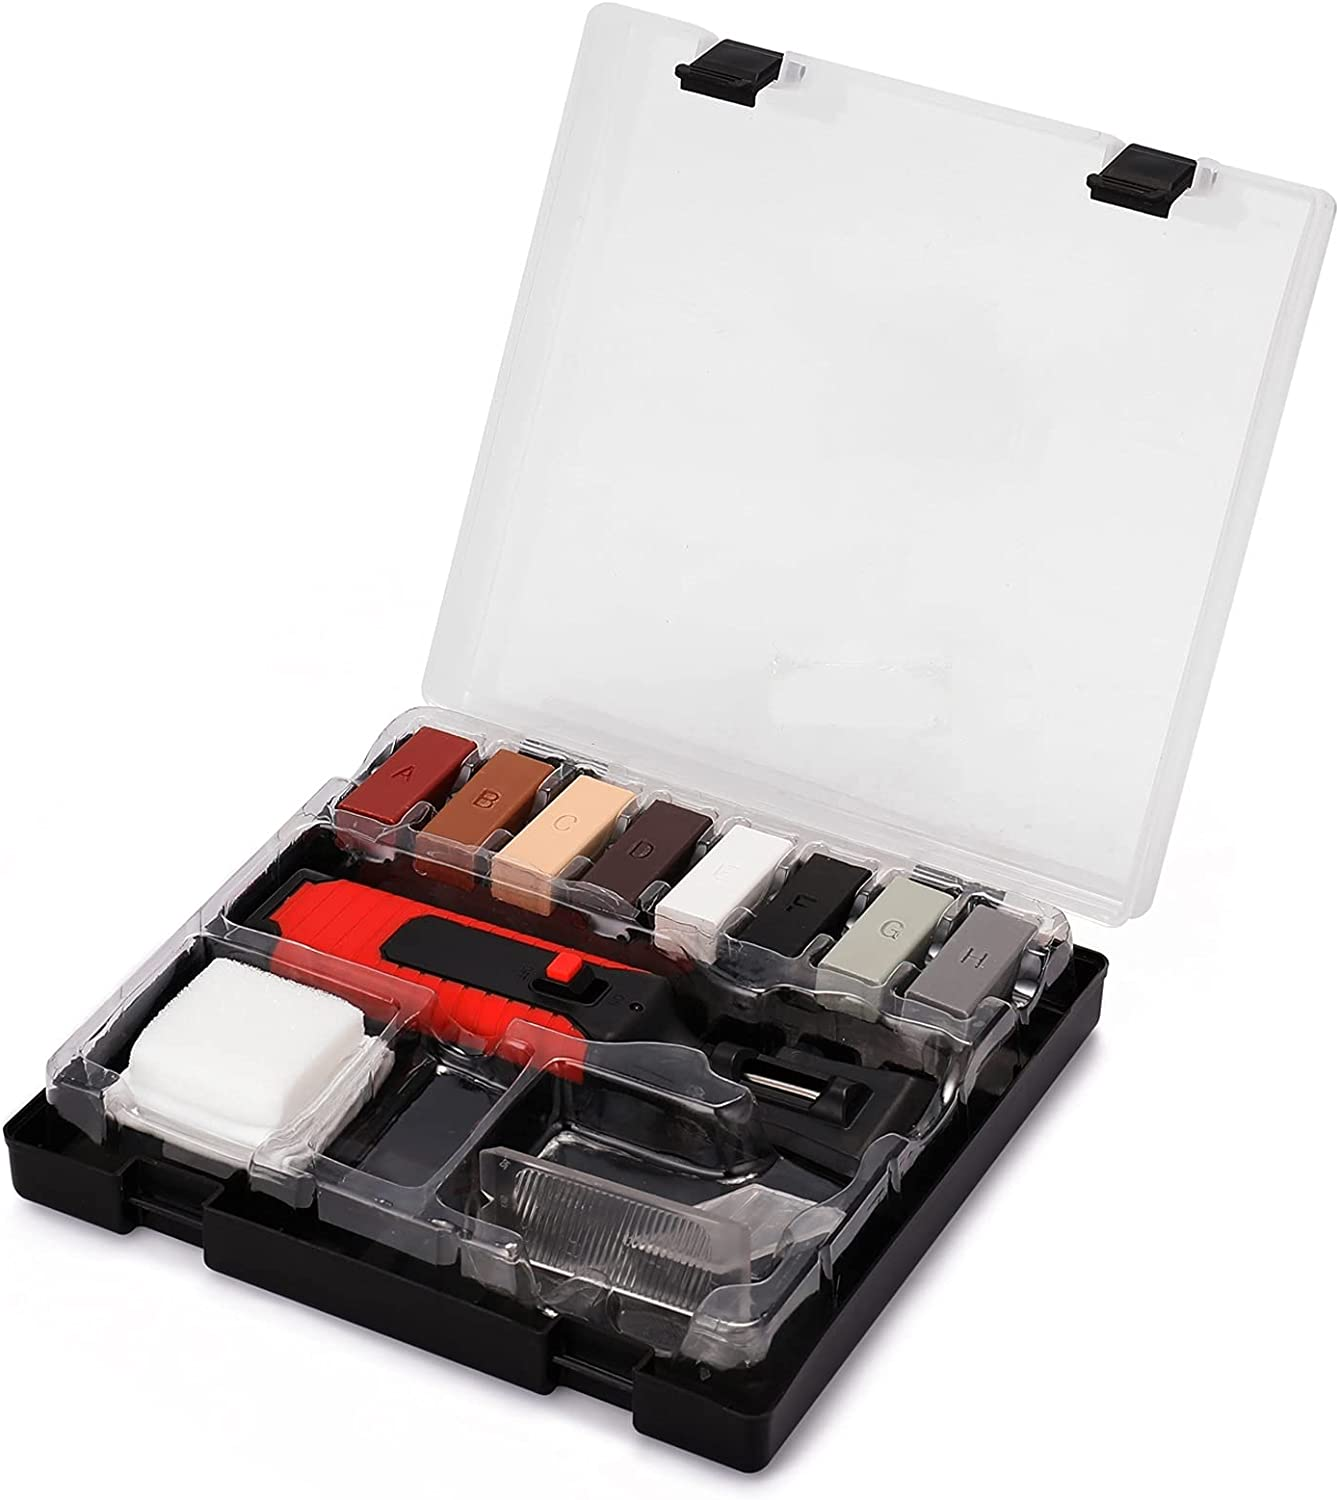 Challenge the lowest price of Japan ☆ 5% OFF Hand Tool Set Laminate Repairing Casing Chips Wax Kit Scratches